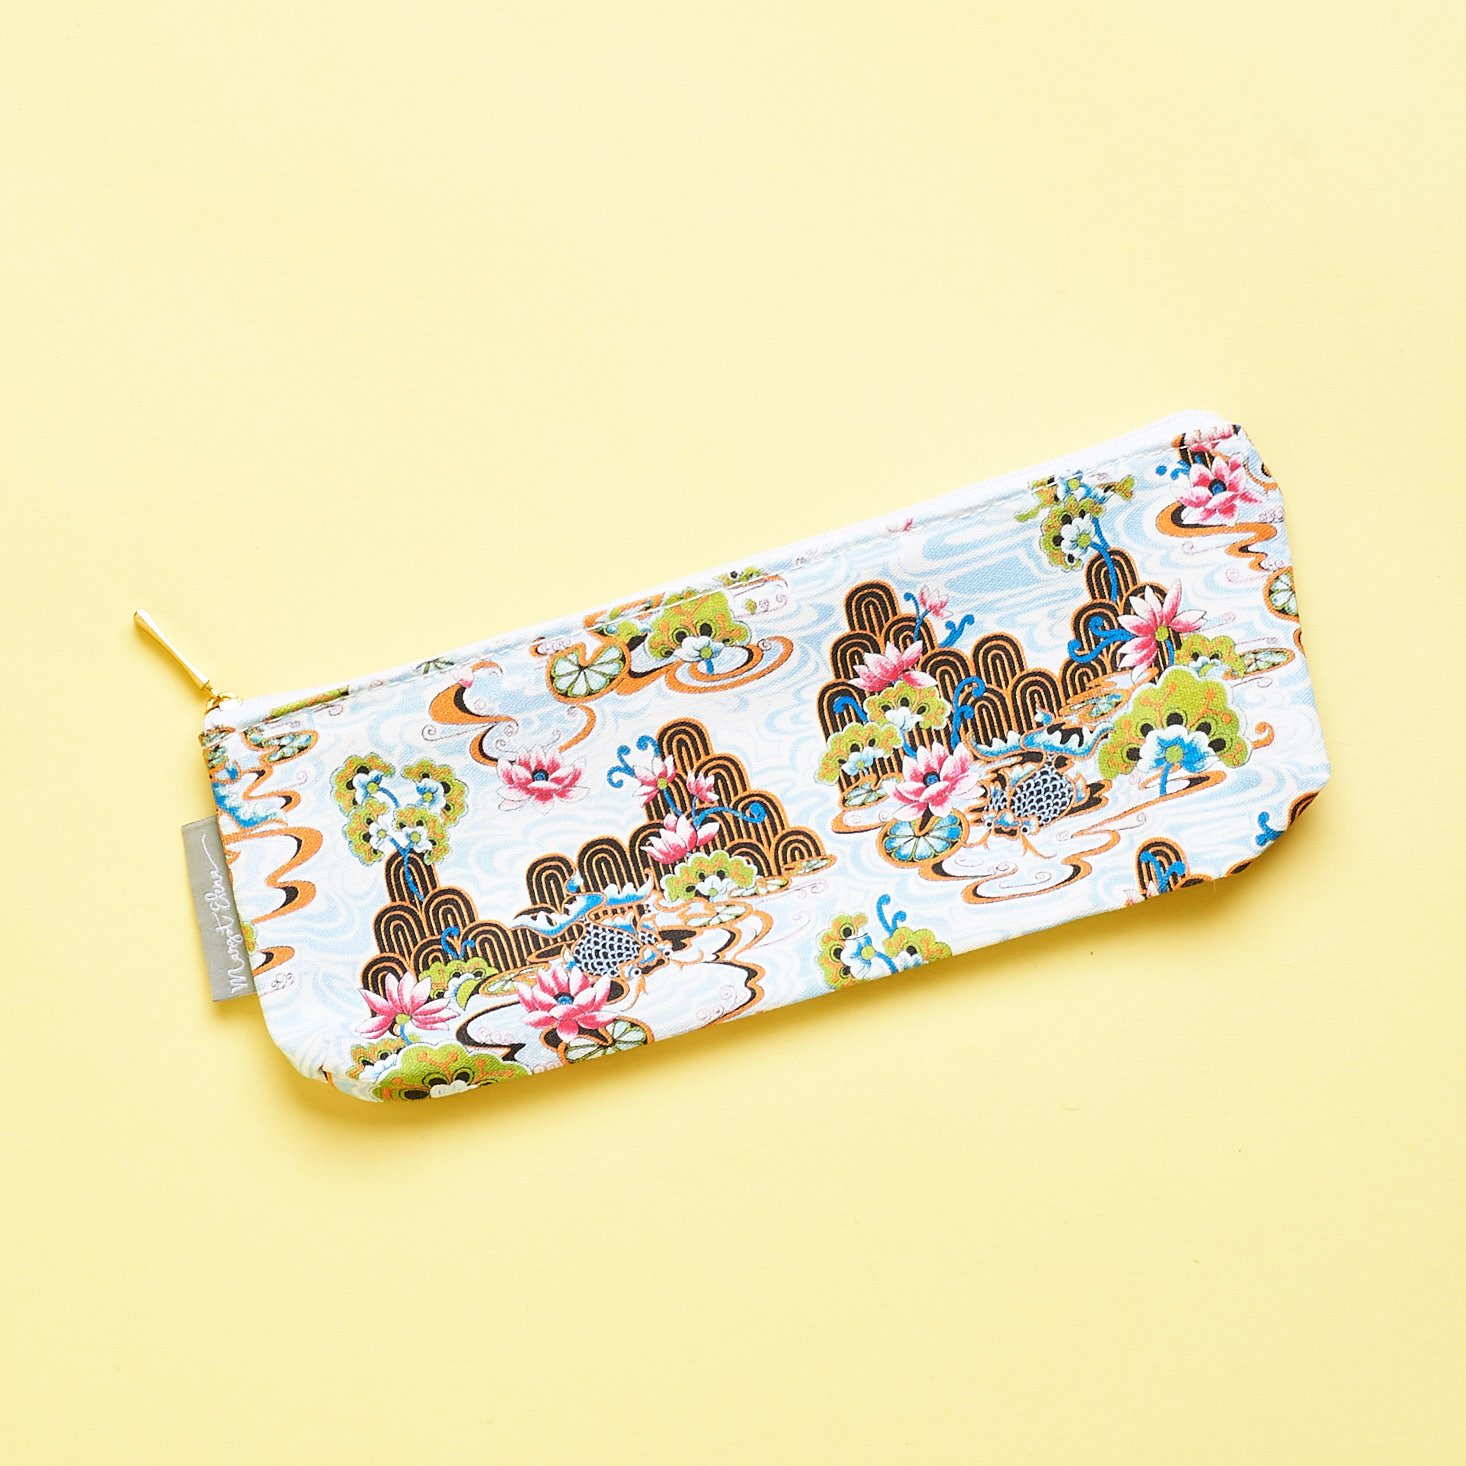 Margot Elena June 2019 review pencil pouch